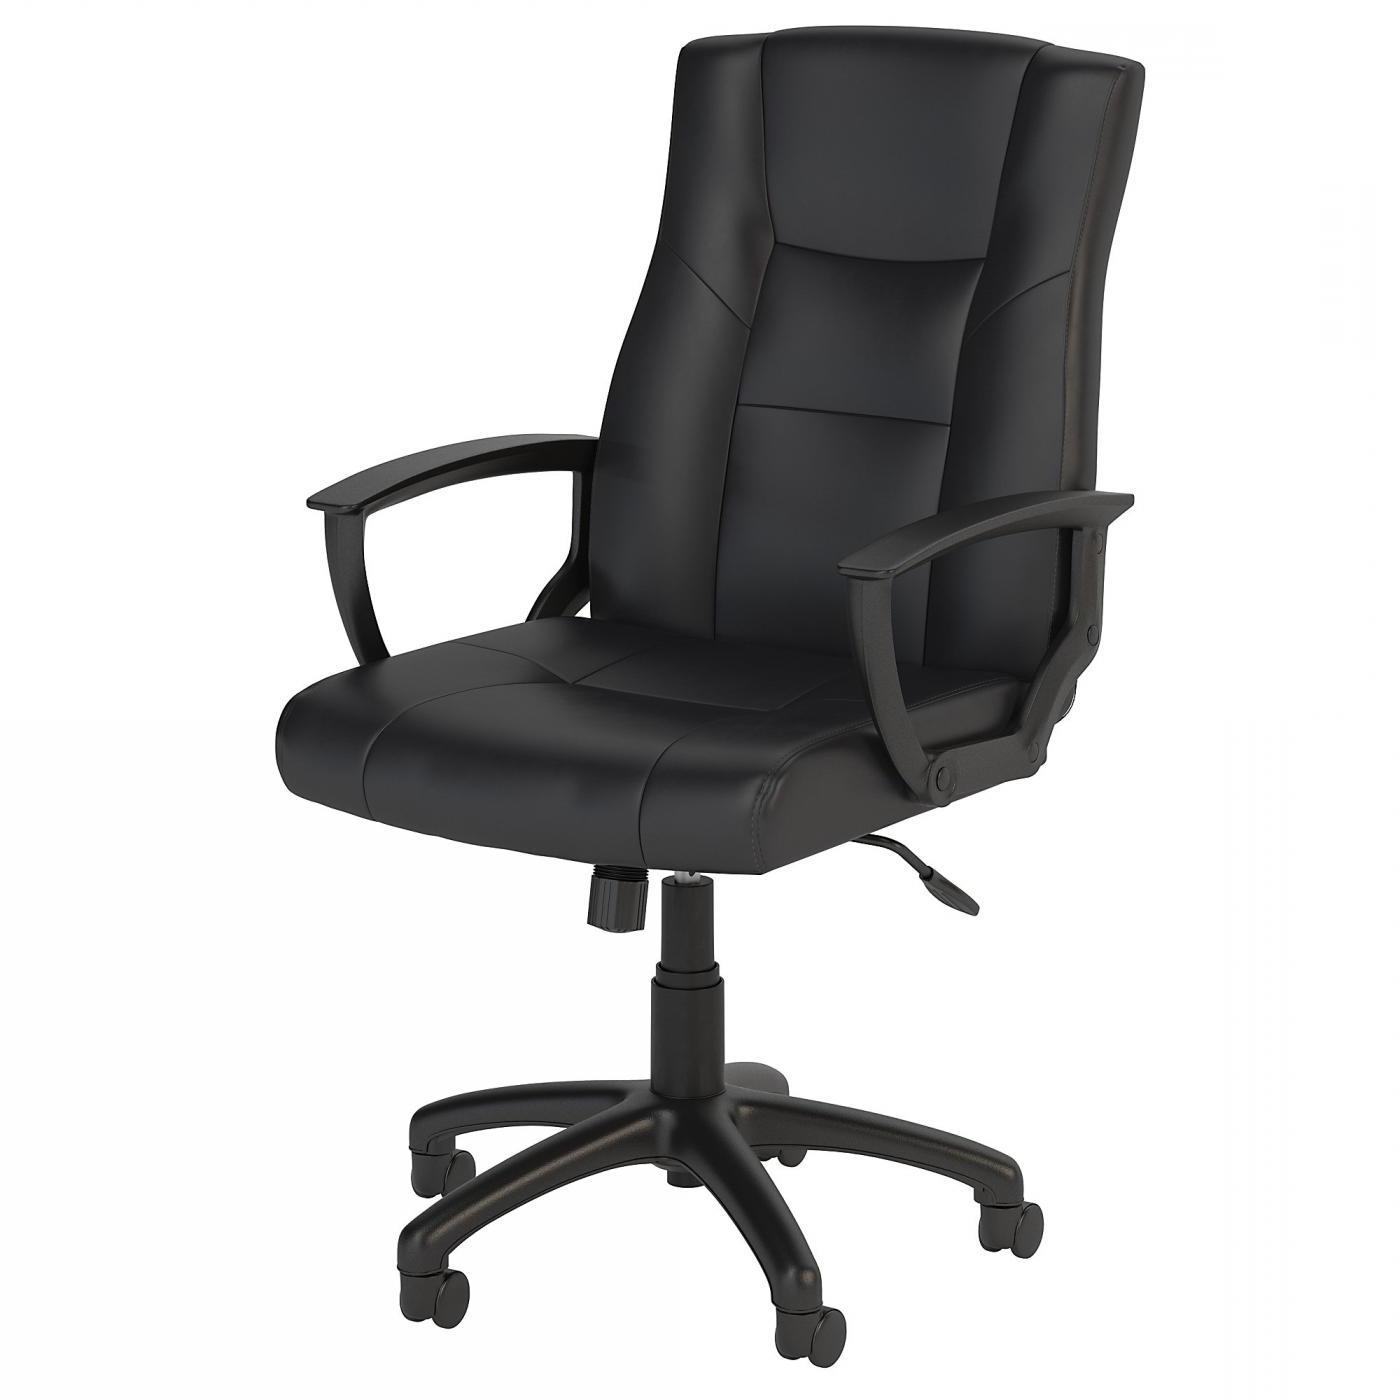 BUSH BUSINESS FURNITURE ACCORD EXECUTIVE OFFICE CHAIR. FREE SHIPPING.